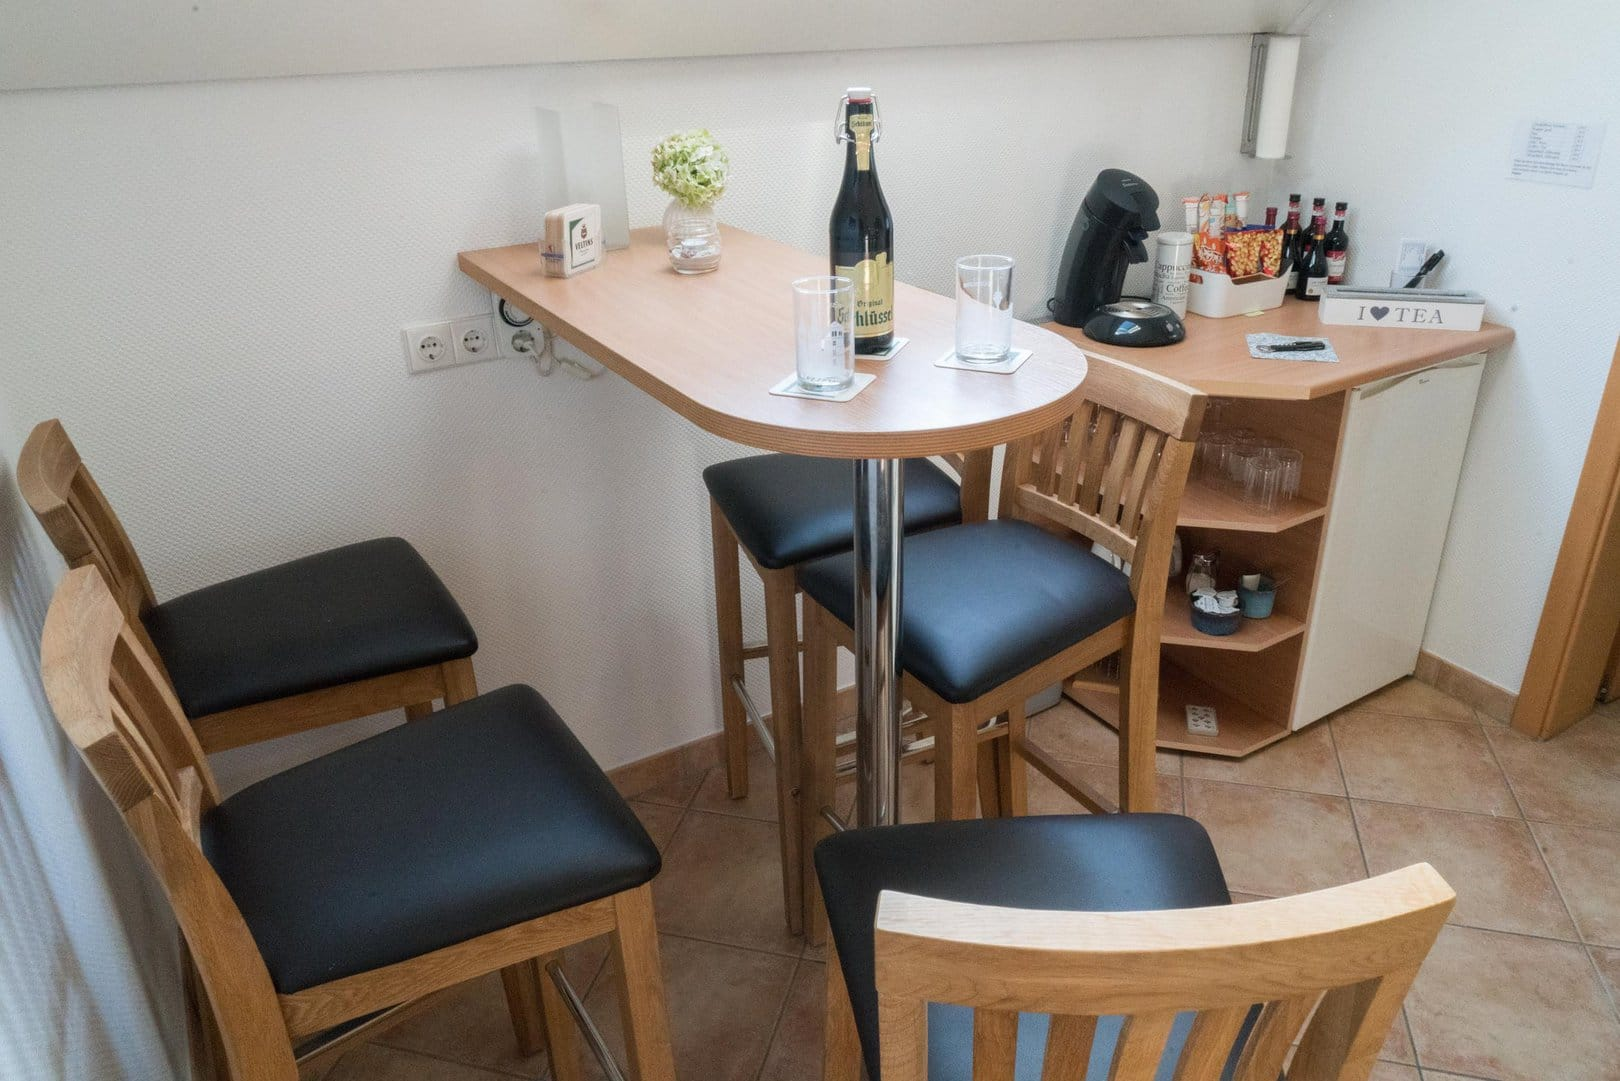 "Common room with a standing table and chairs. On it, a bottle of ""Altbier�. In the background you can see the minibar with a coffee machine, snacks, bottles of wine, as well as glasses and cups."